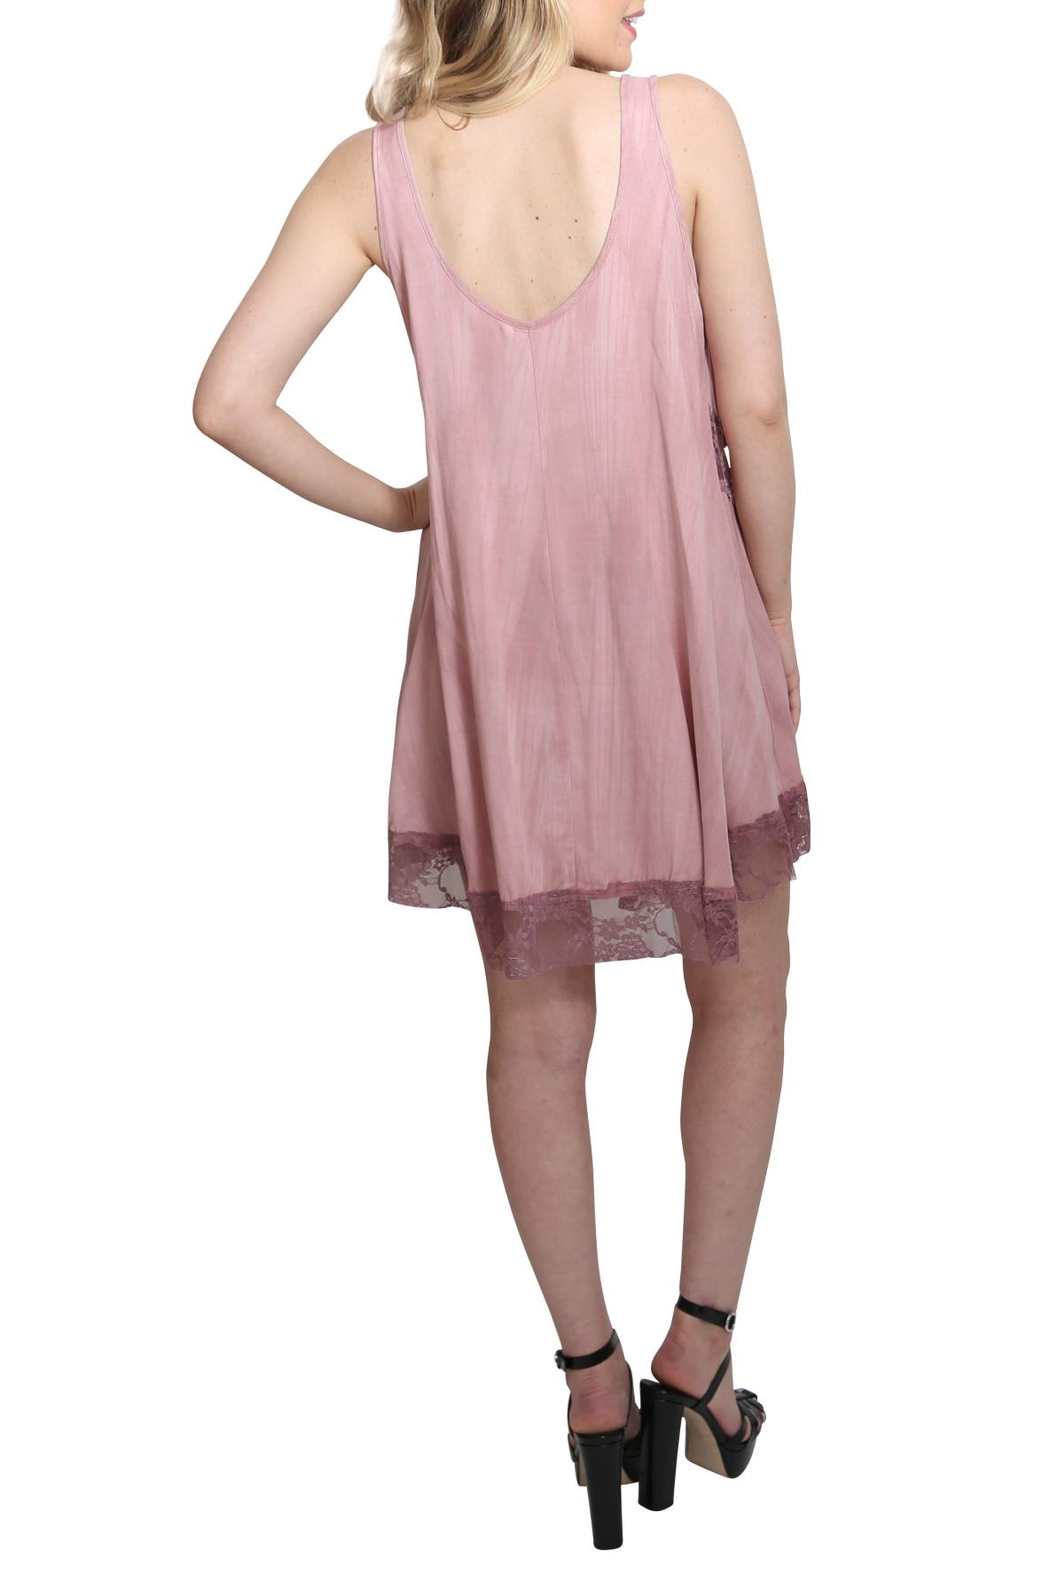 Oddy Peek-a-boo Dress - Side Cropped Image